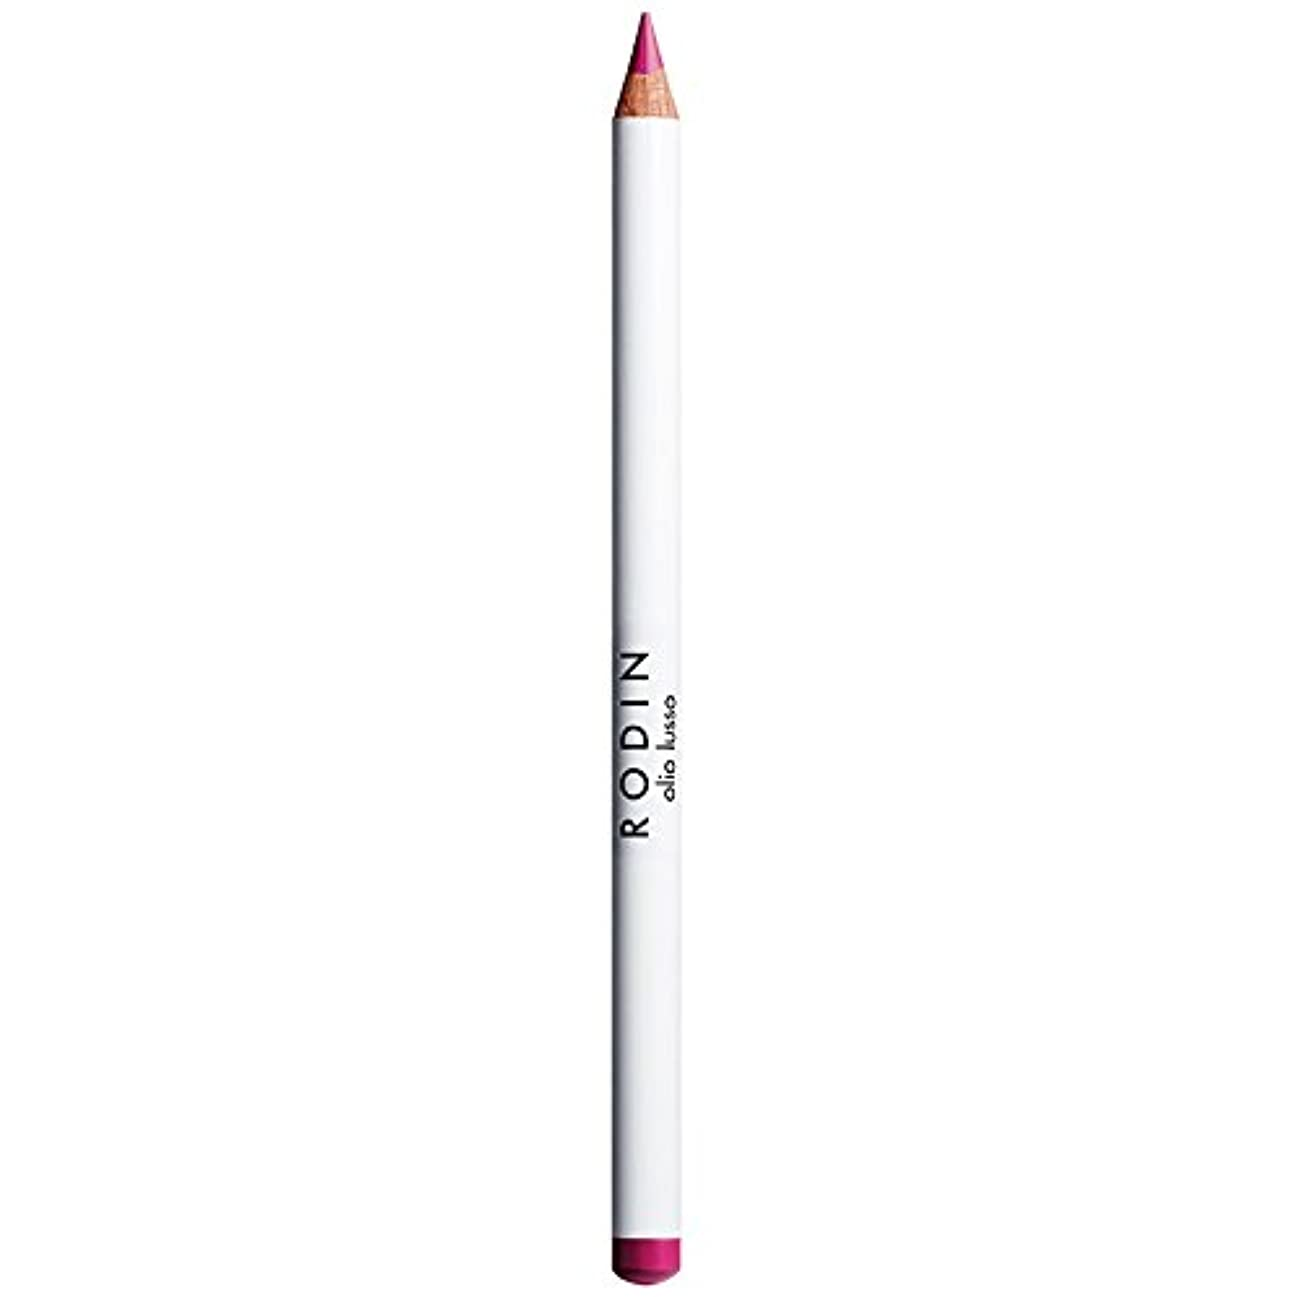 楽しむのれんビルRodin Olio Lusso Luxury Lip Pencil - Billie on the Bike 1.8g